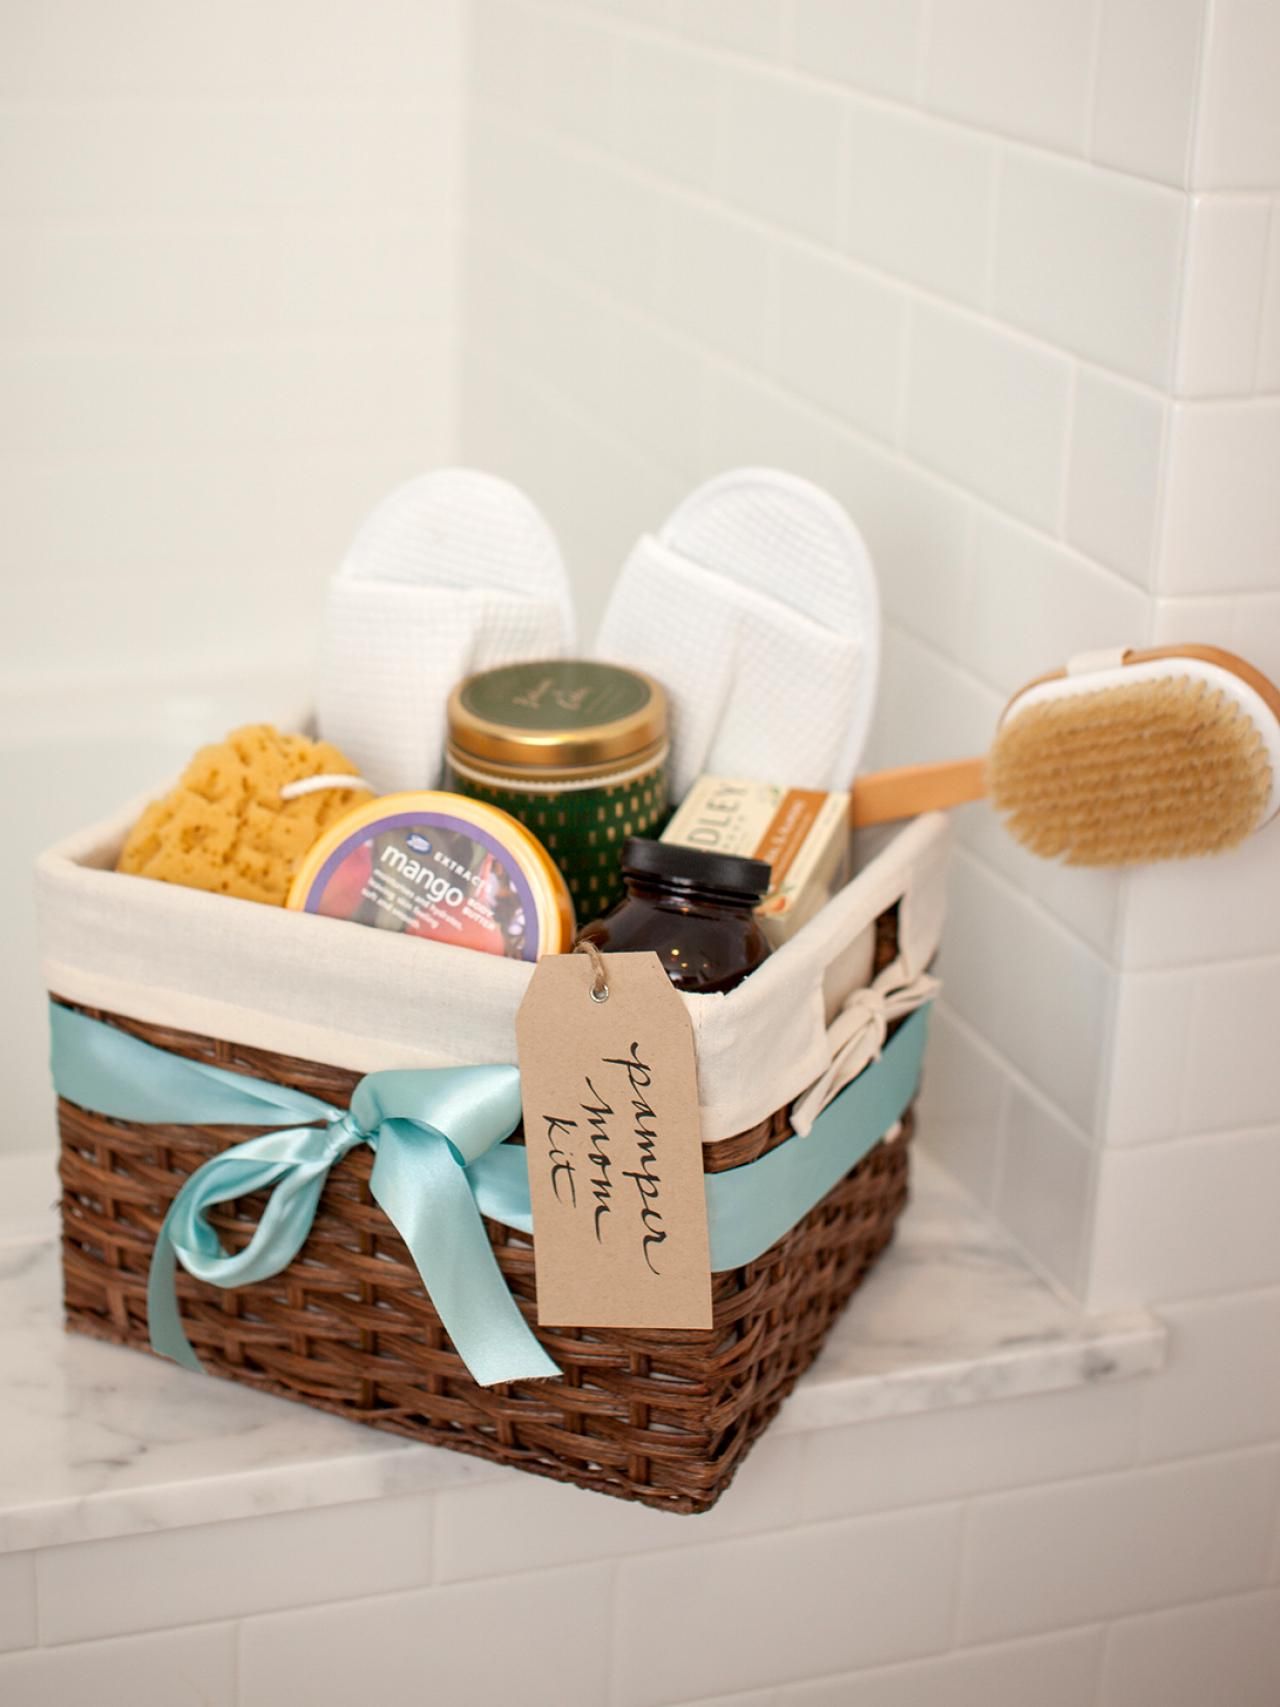 5 Genius Ways To Upcycle An Old Basket HGTVs Decorating